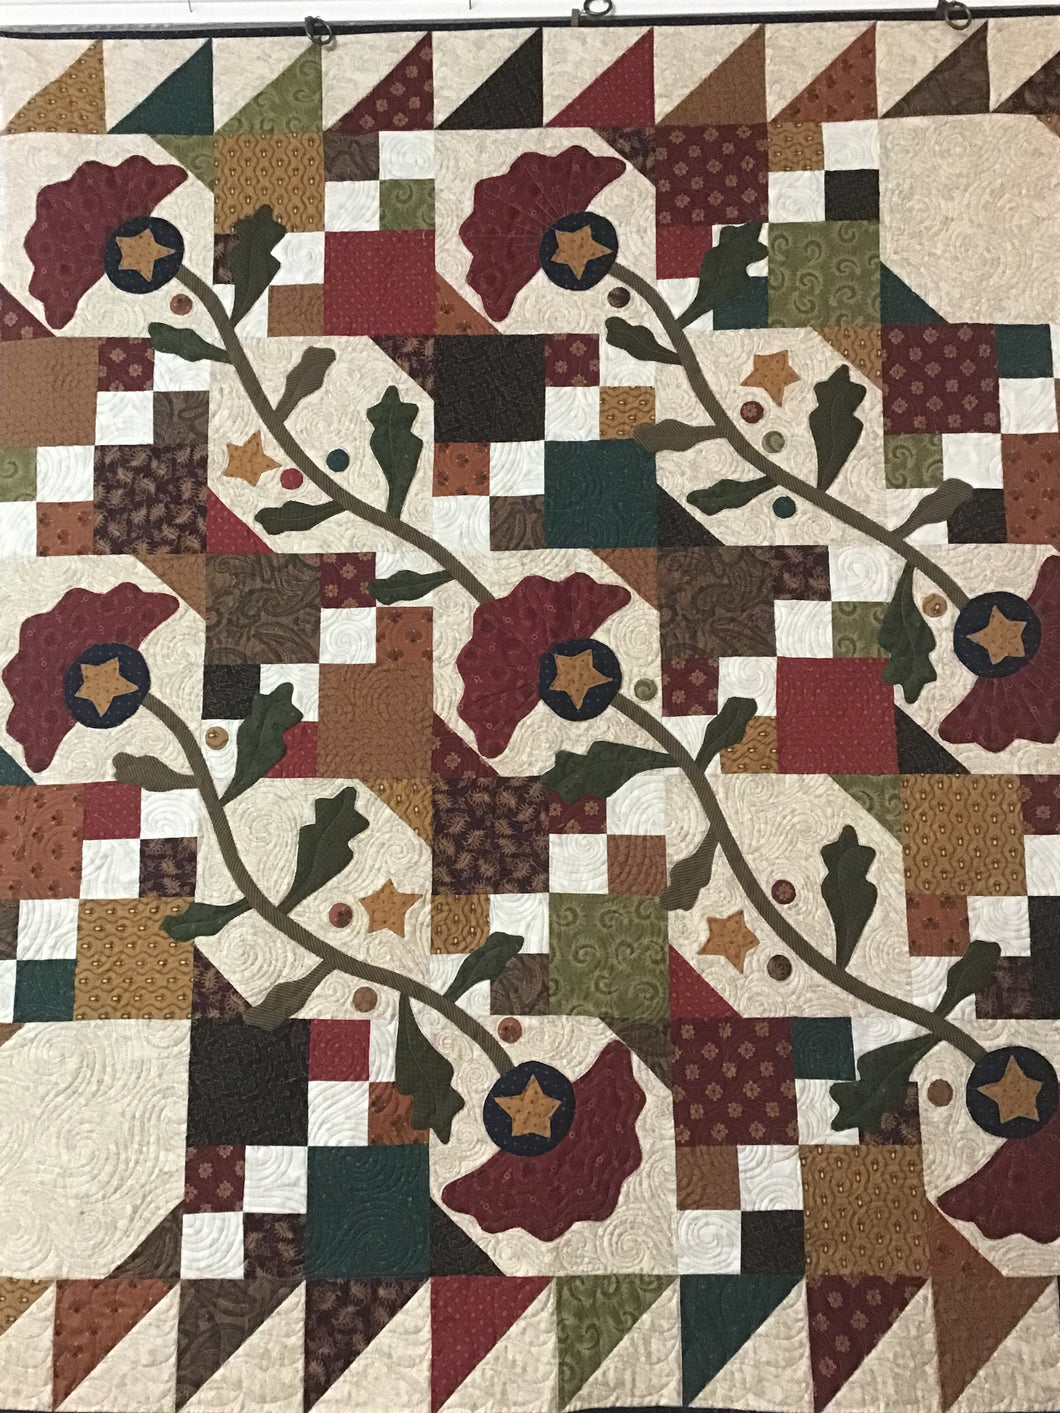 Garden Bramble Applique Quilt Kit